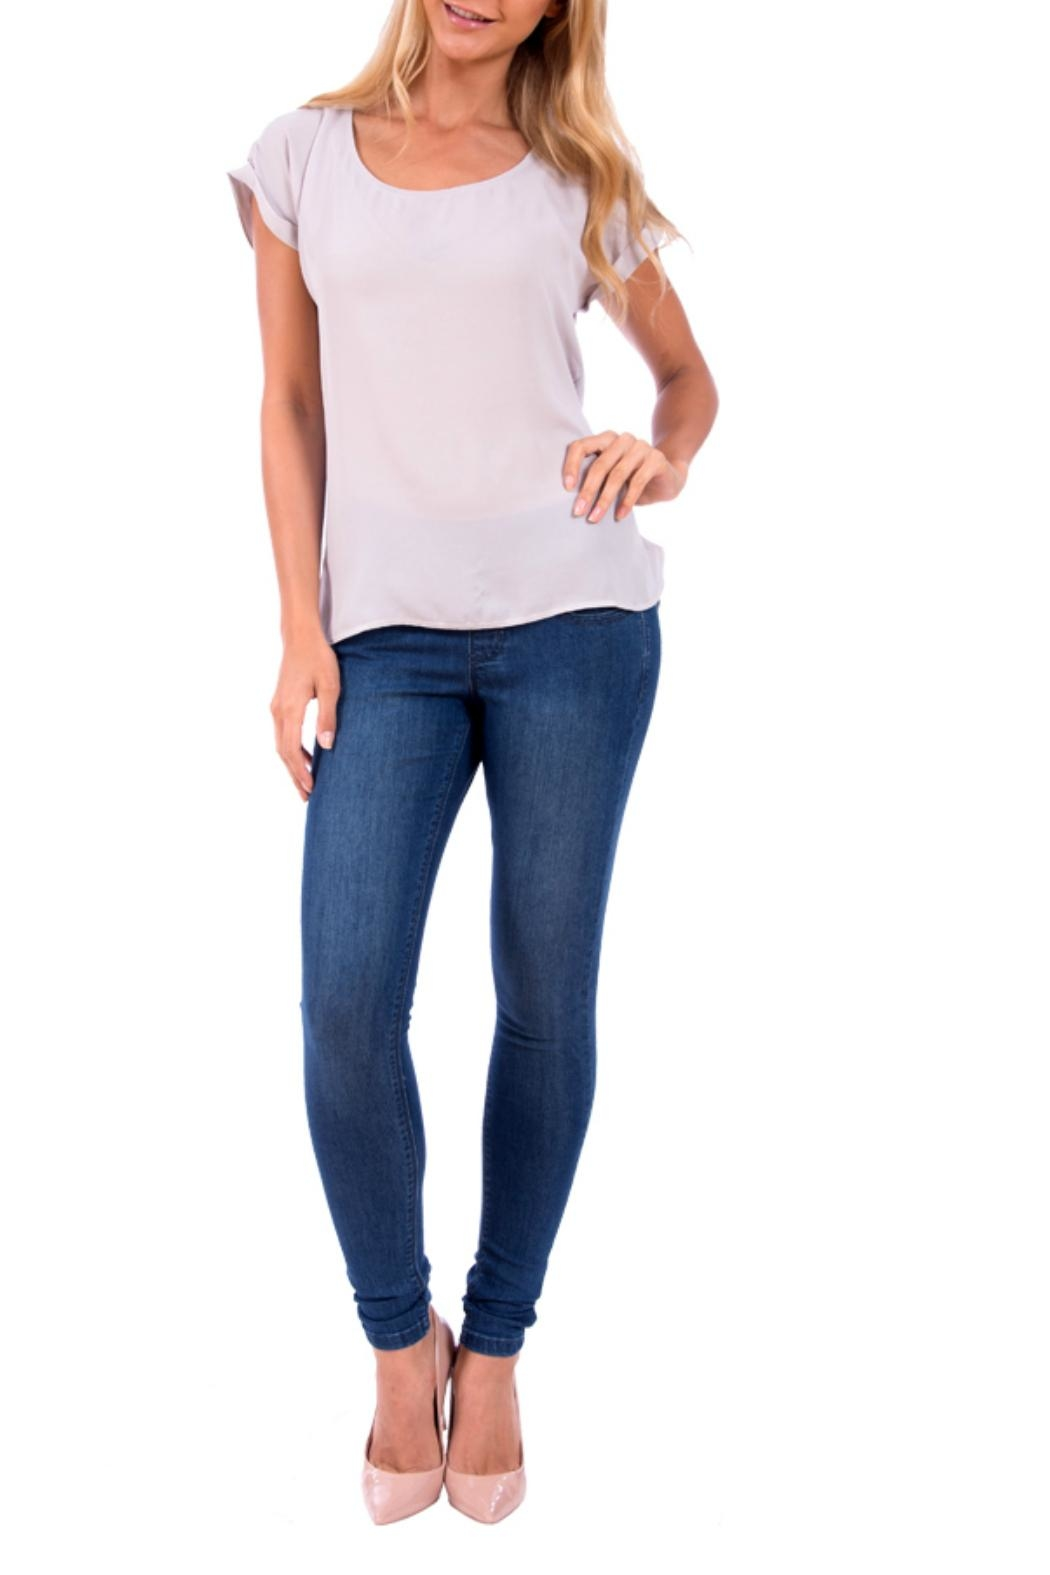 Lola Jeans Anna Pull On  Jeans - Back Cropped Image